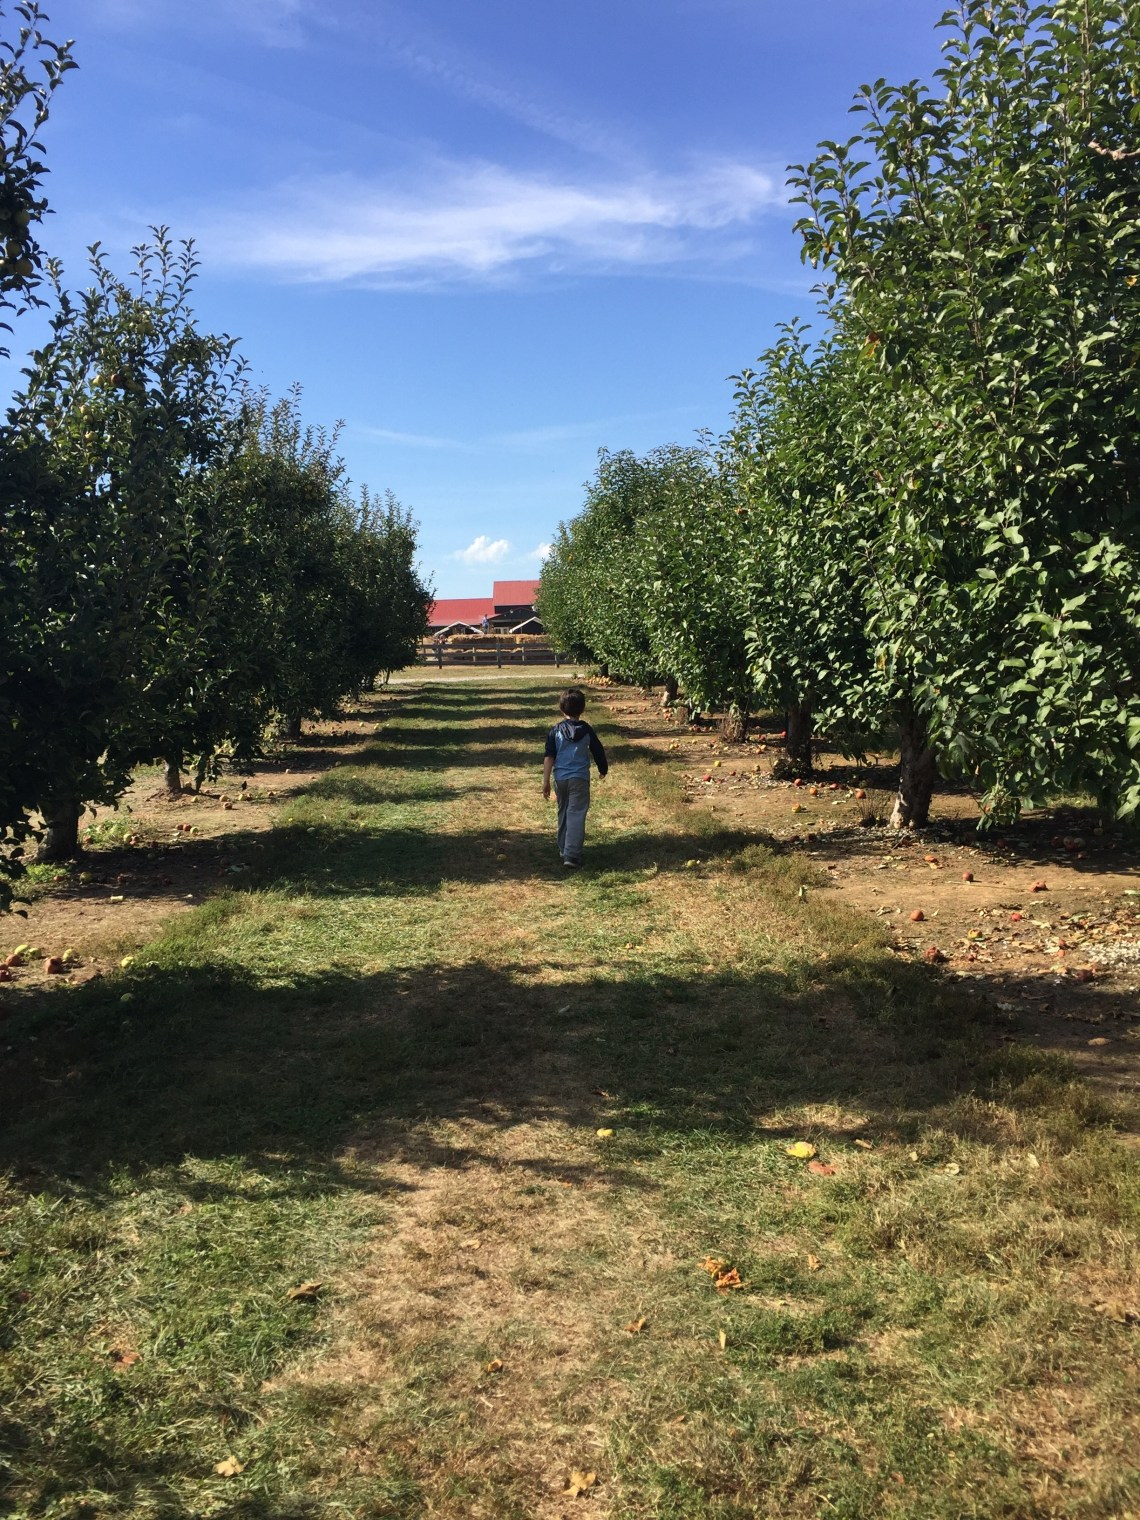 Graham walking in Evan's Orchard